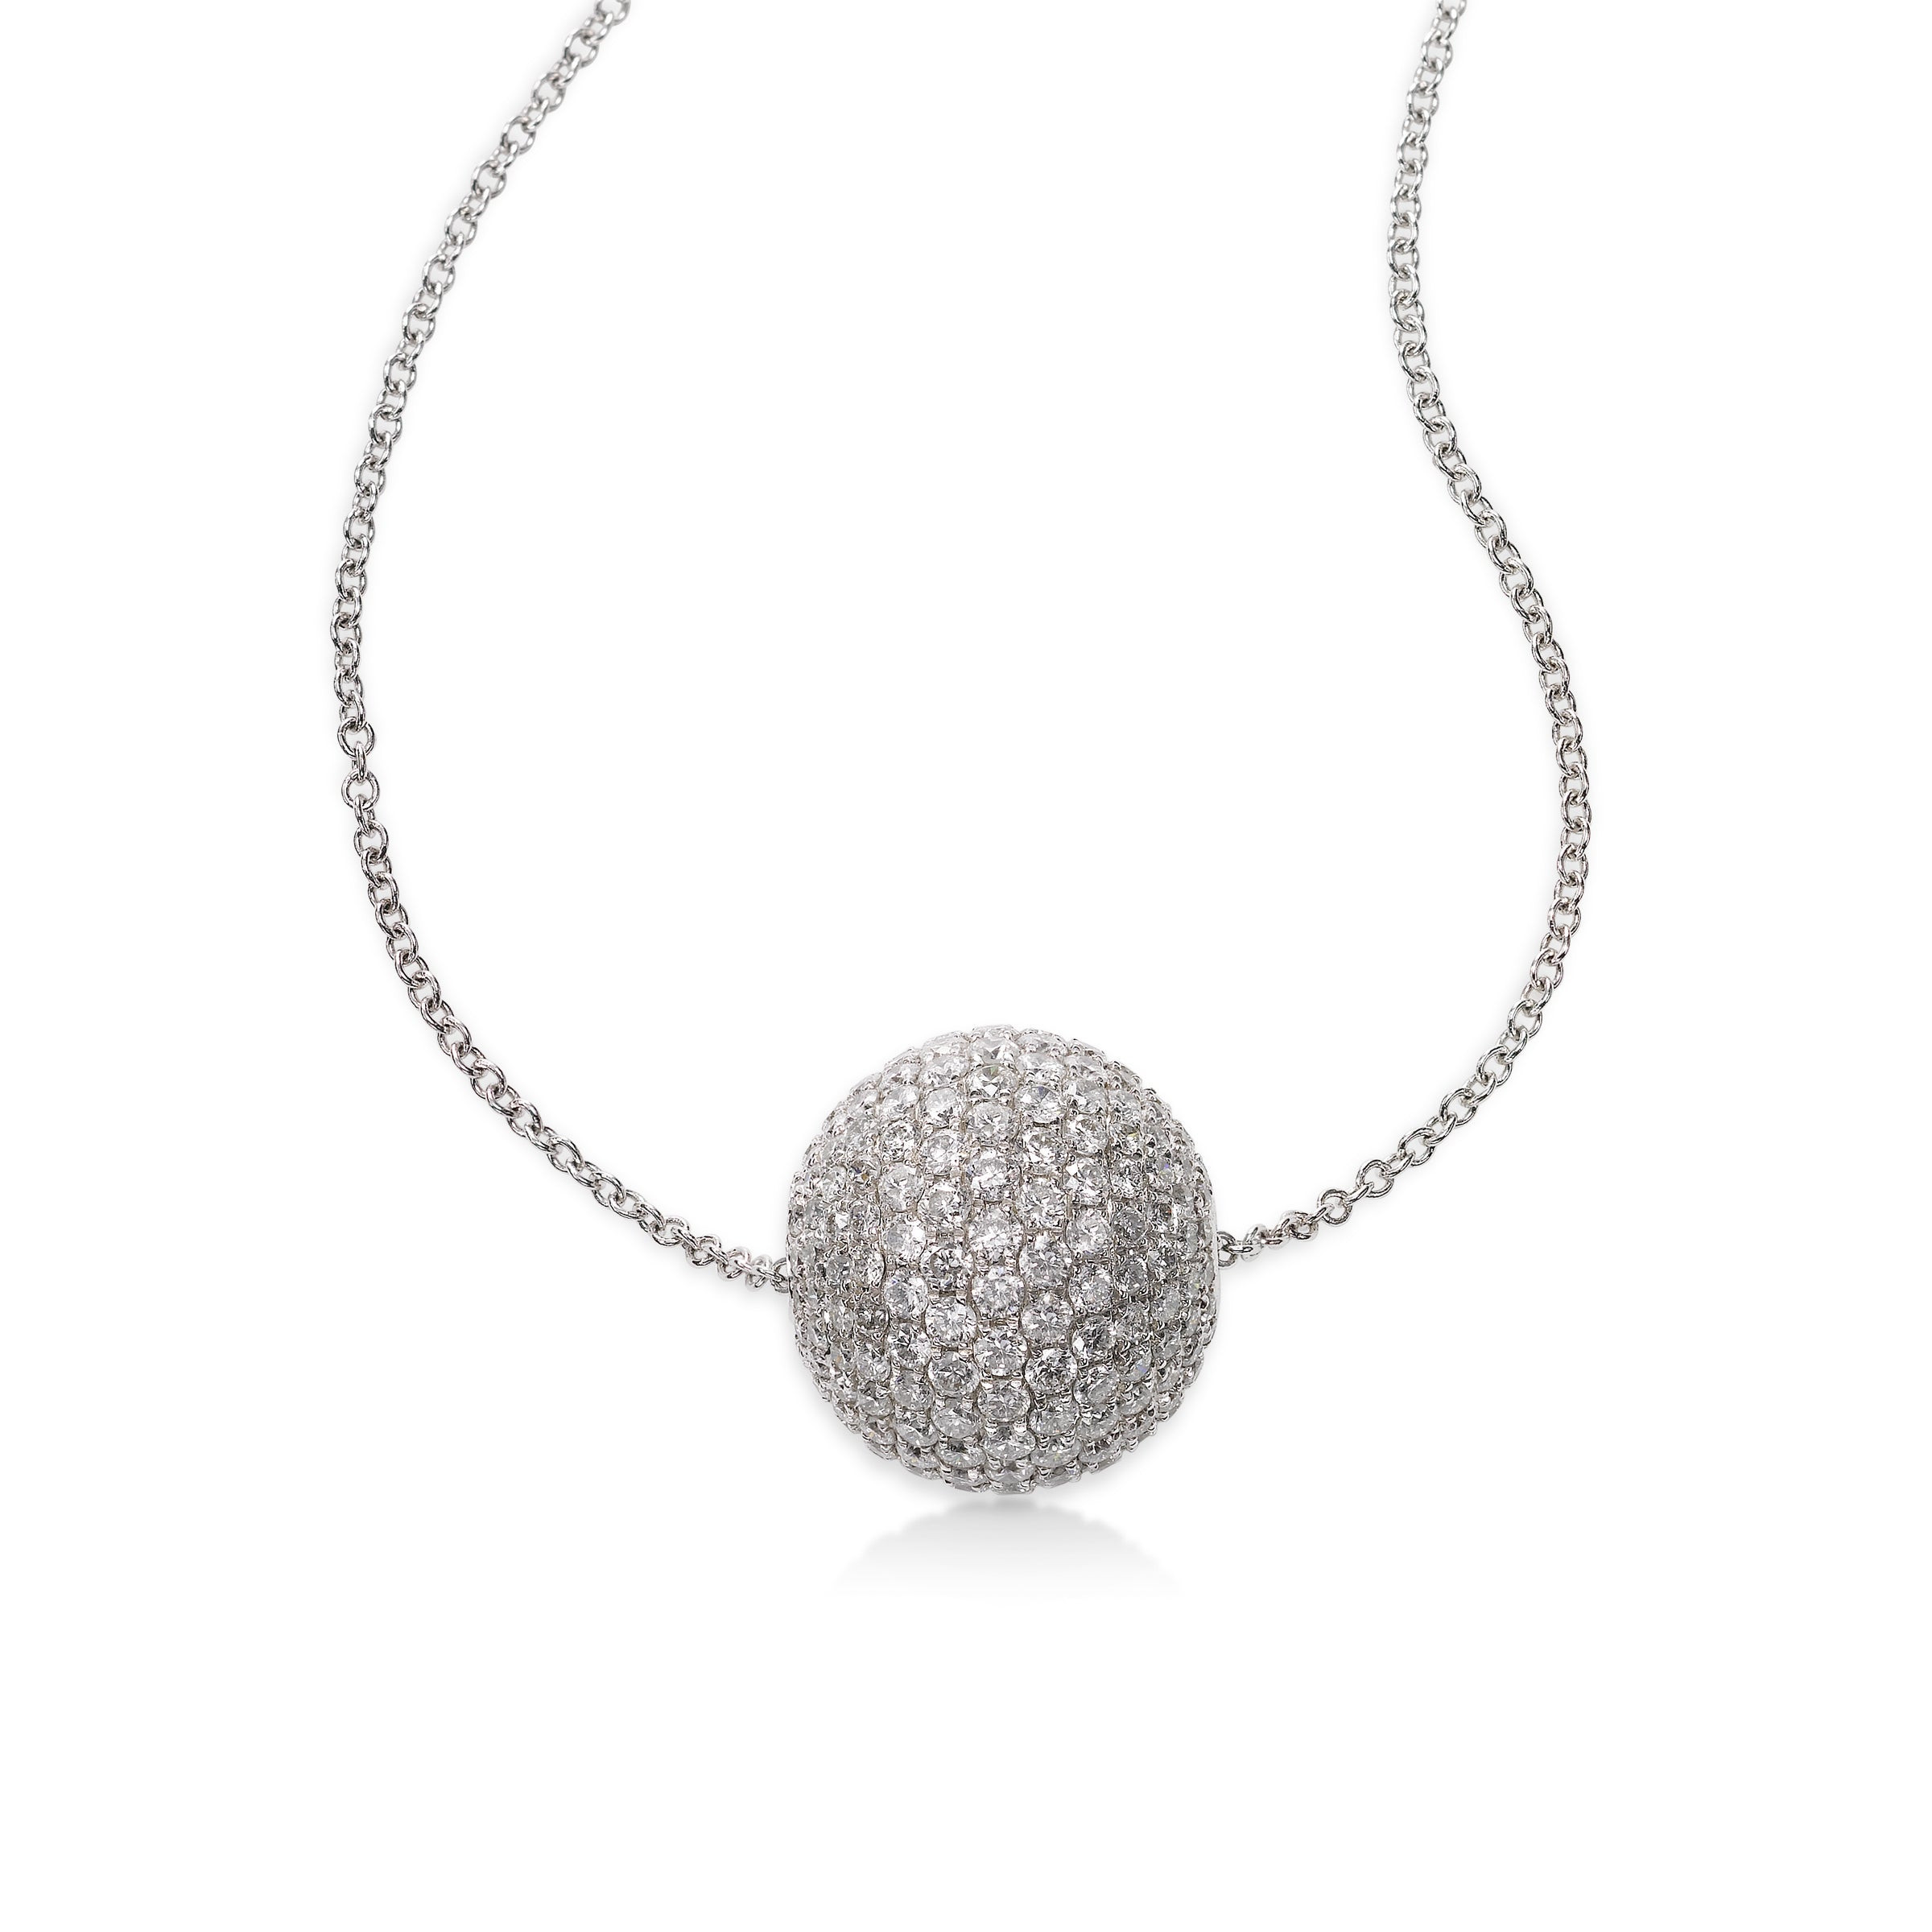 Pavé Diamond Ball Necklace, 18K White Gold